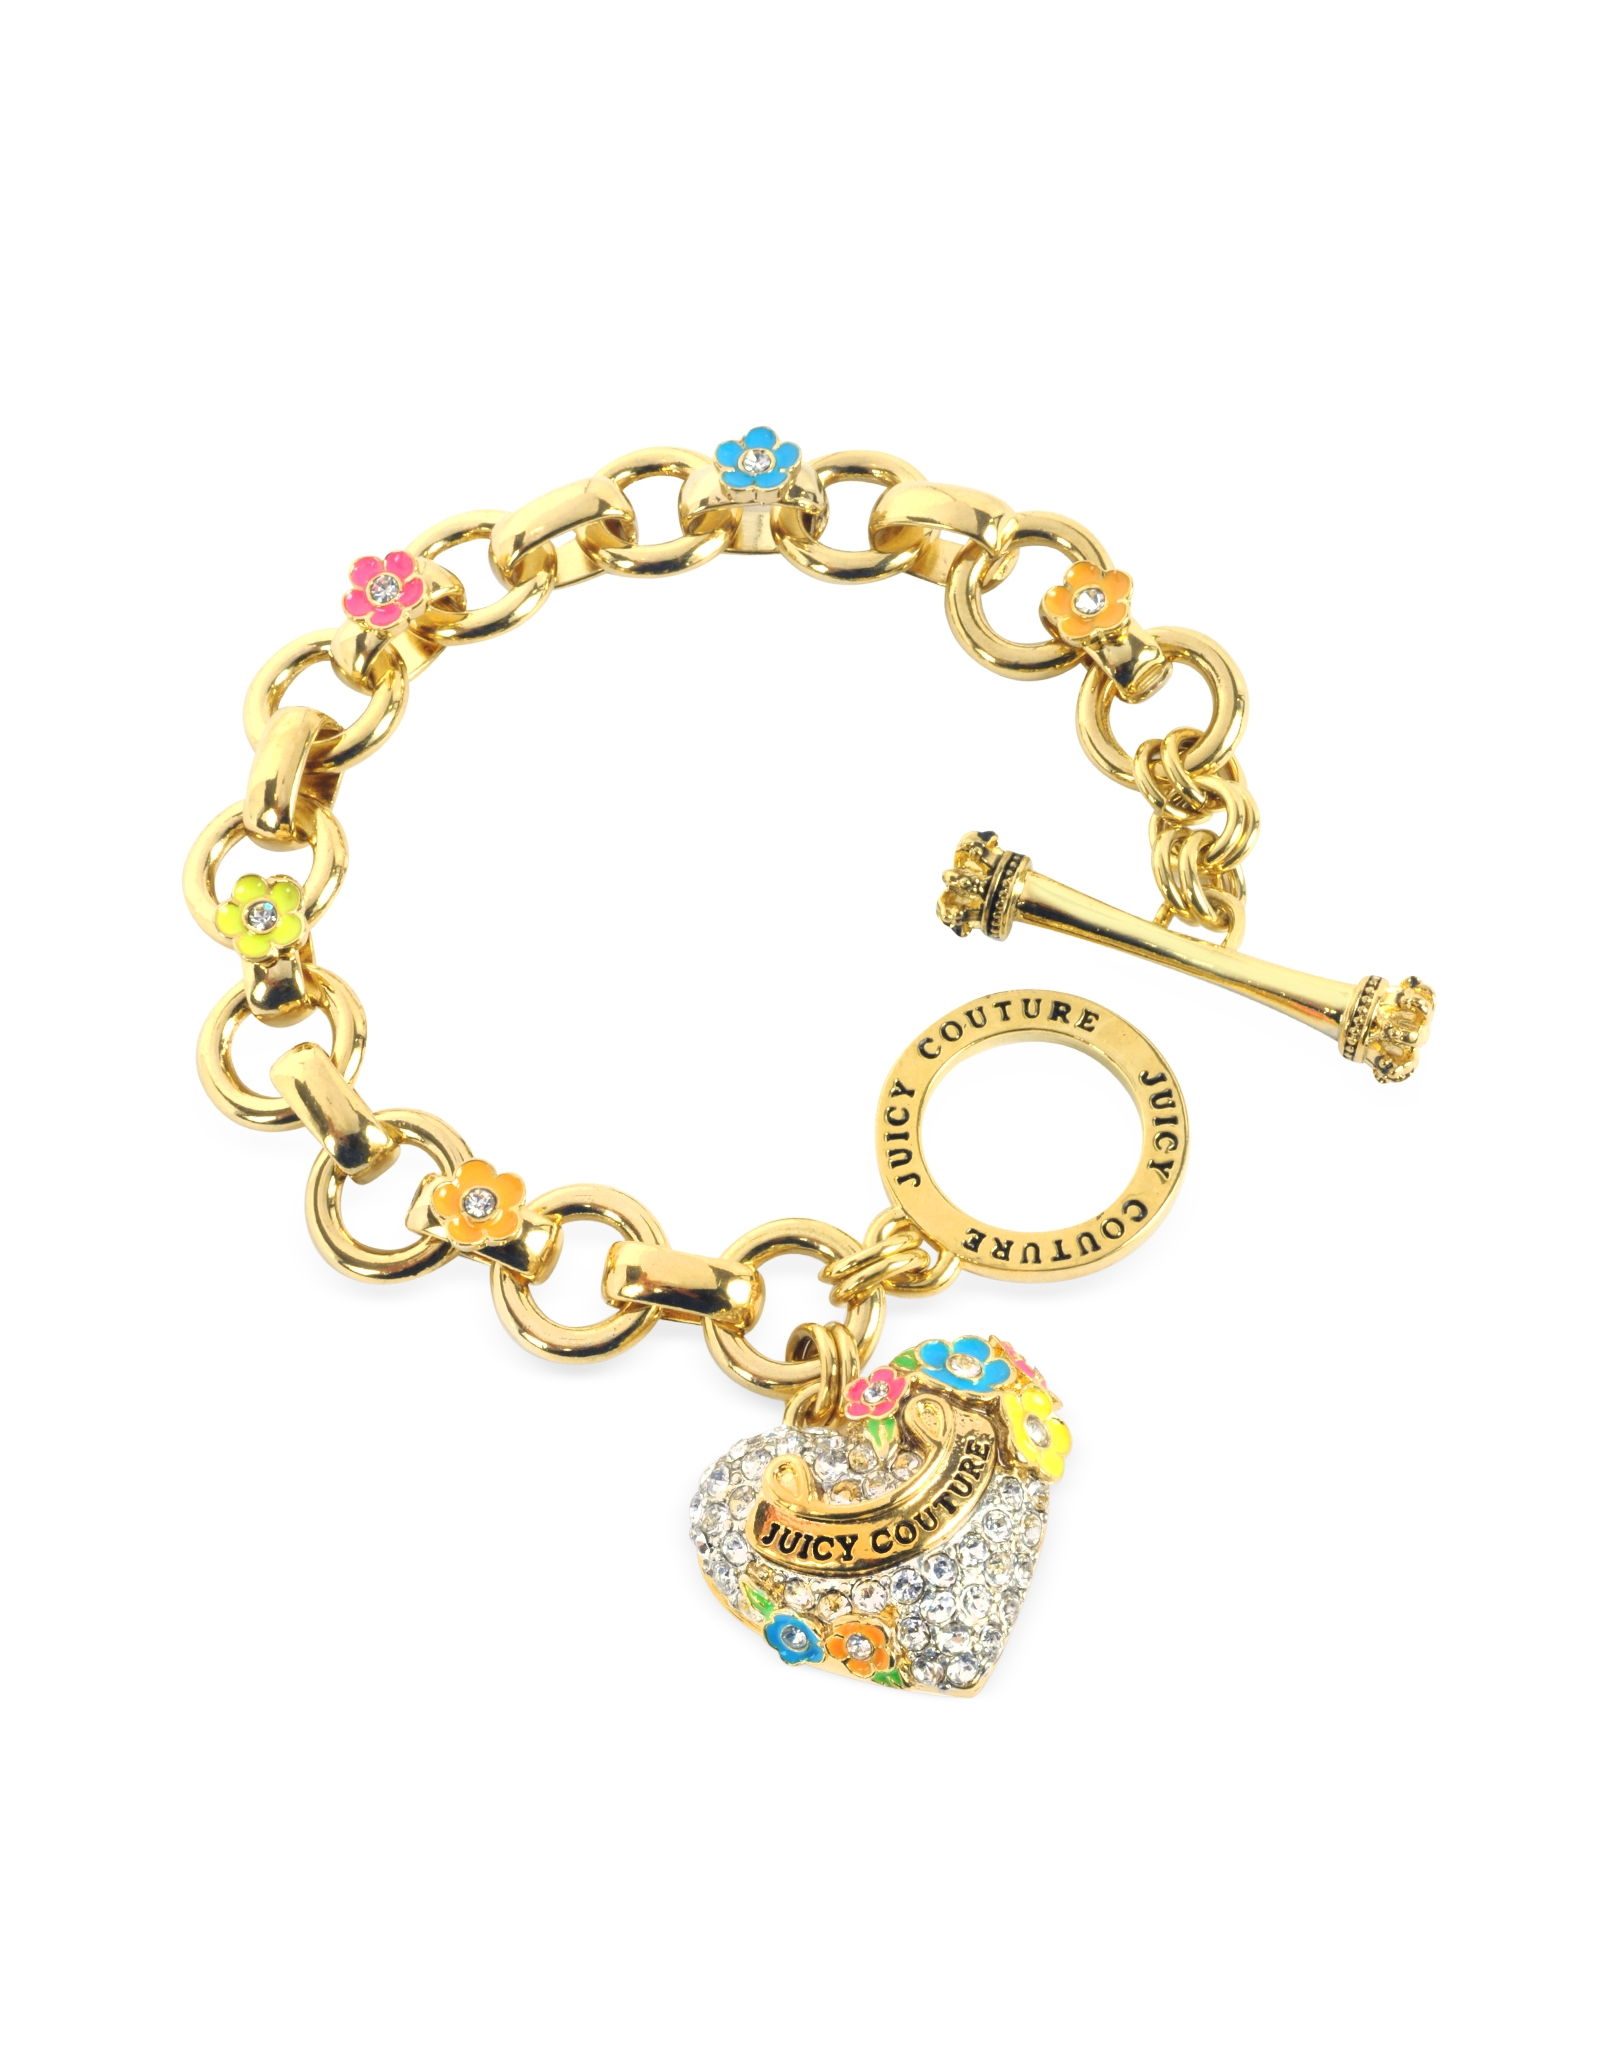 juicy couture pave heart and flower charm bracelet in gold